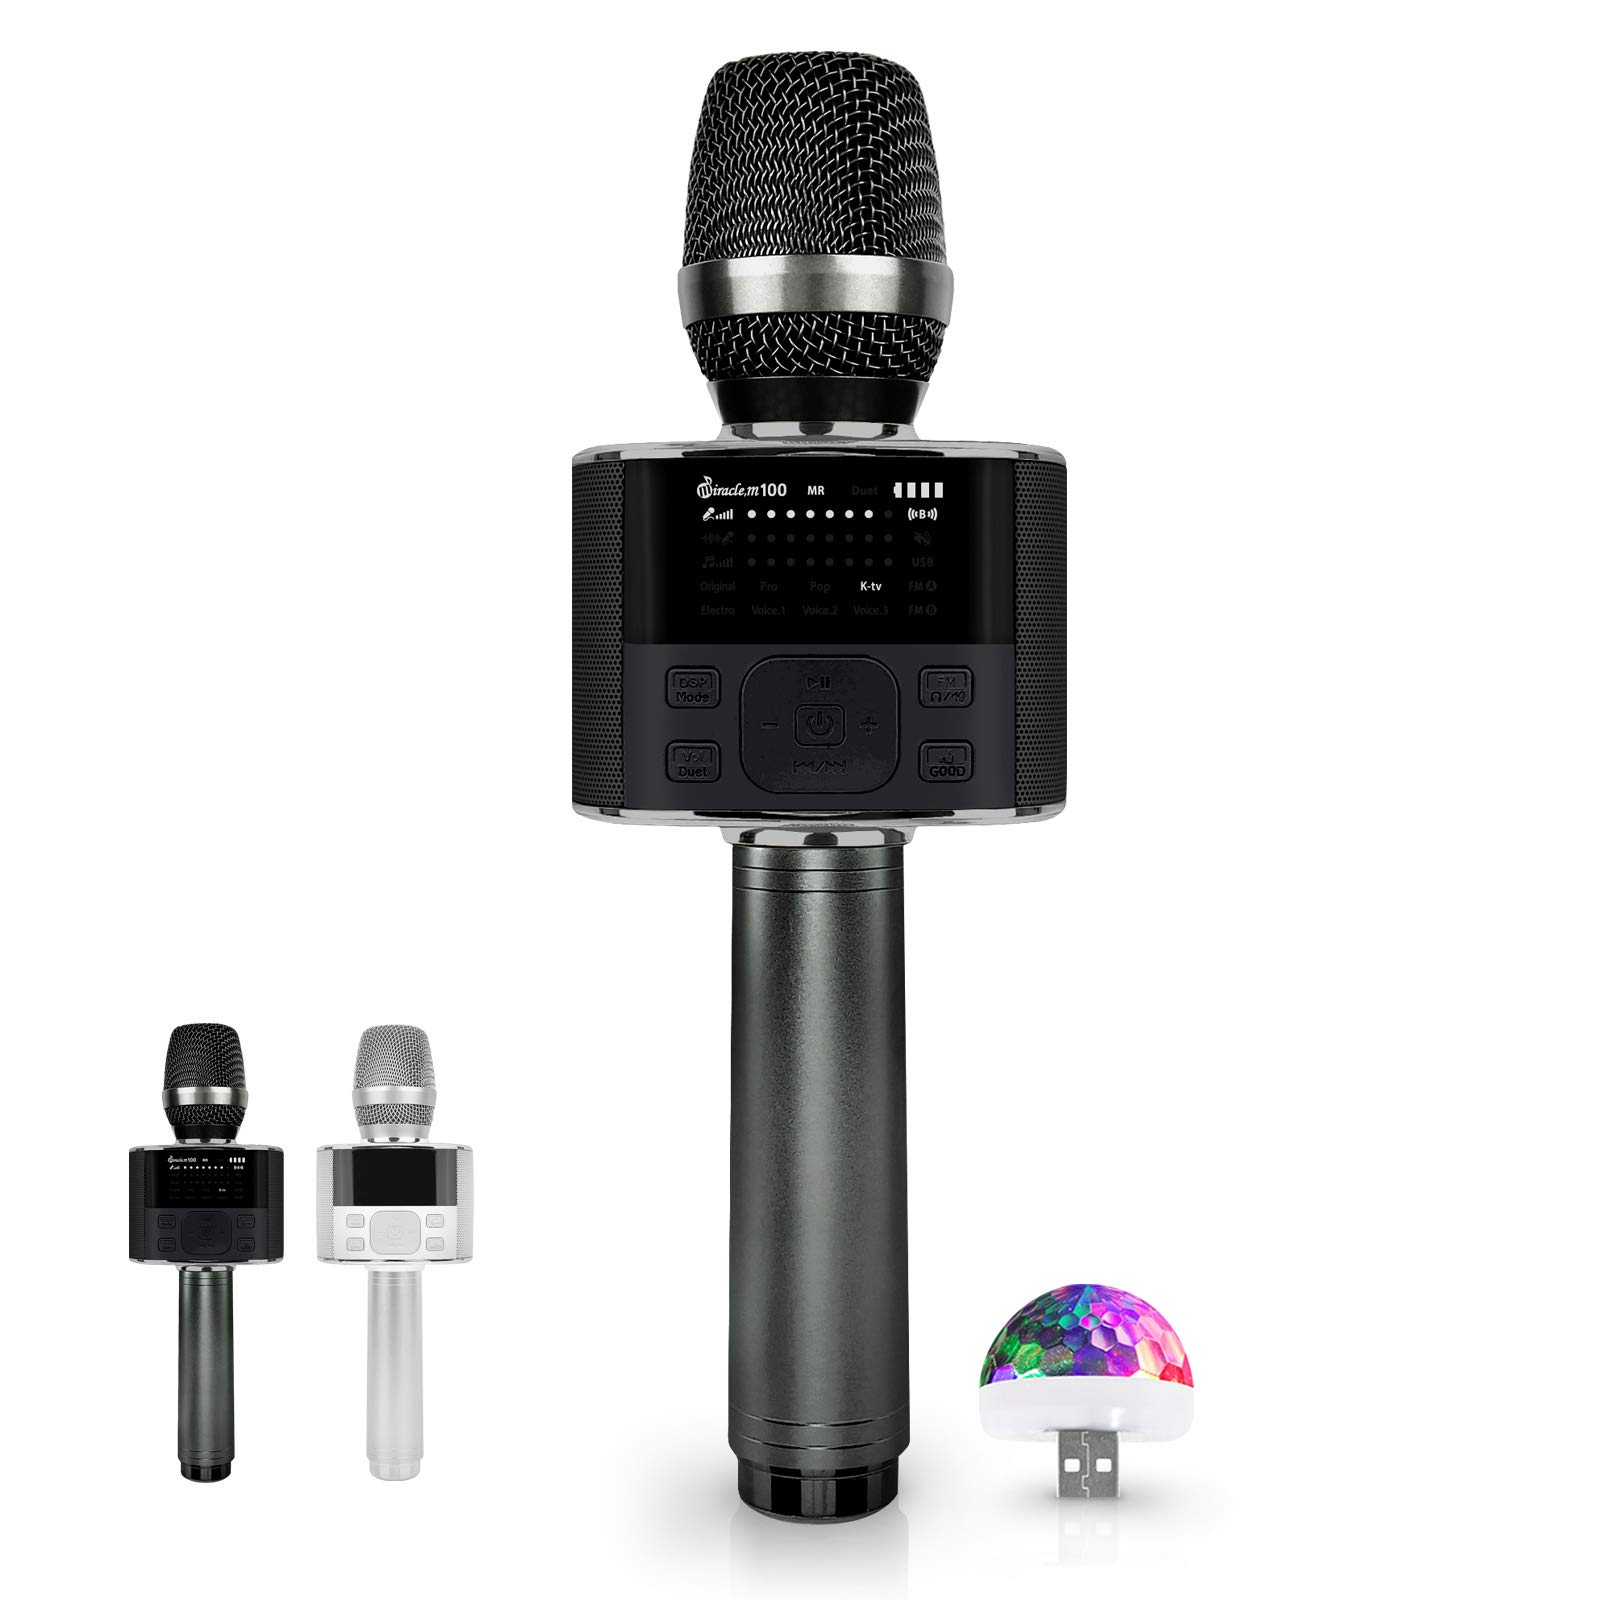 Wireless Bluetooth Karaoke Microphone, with LED Screen, Portable Handheld MIC & Speaker for Birthday, Home Party, Presentation Android/iPhone/PC, car Microphone